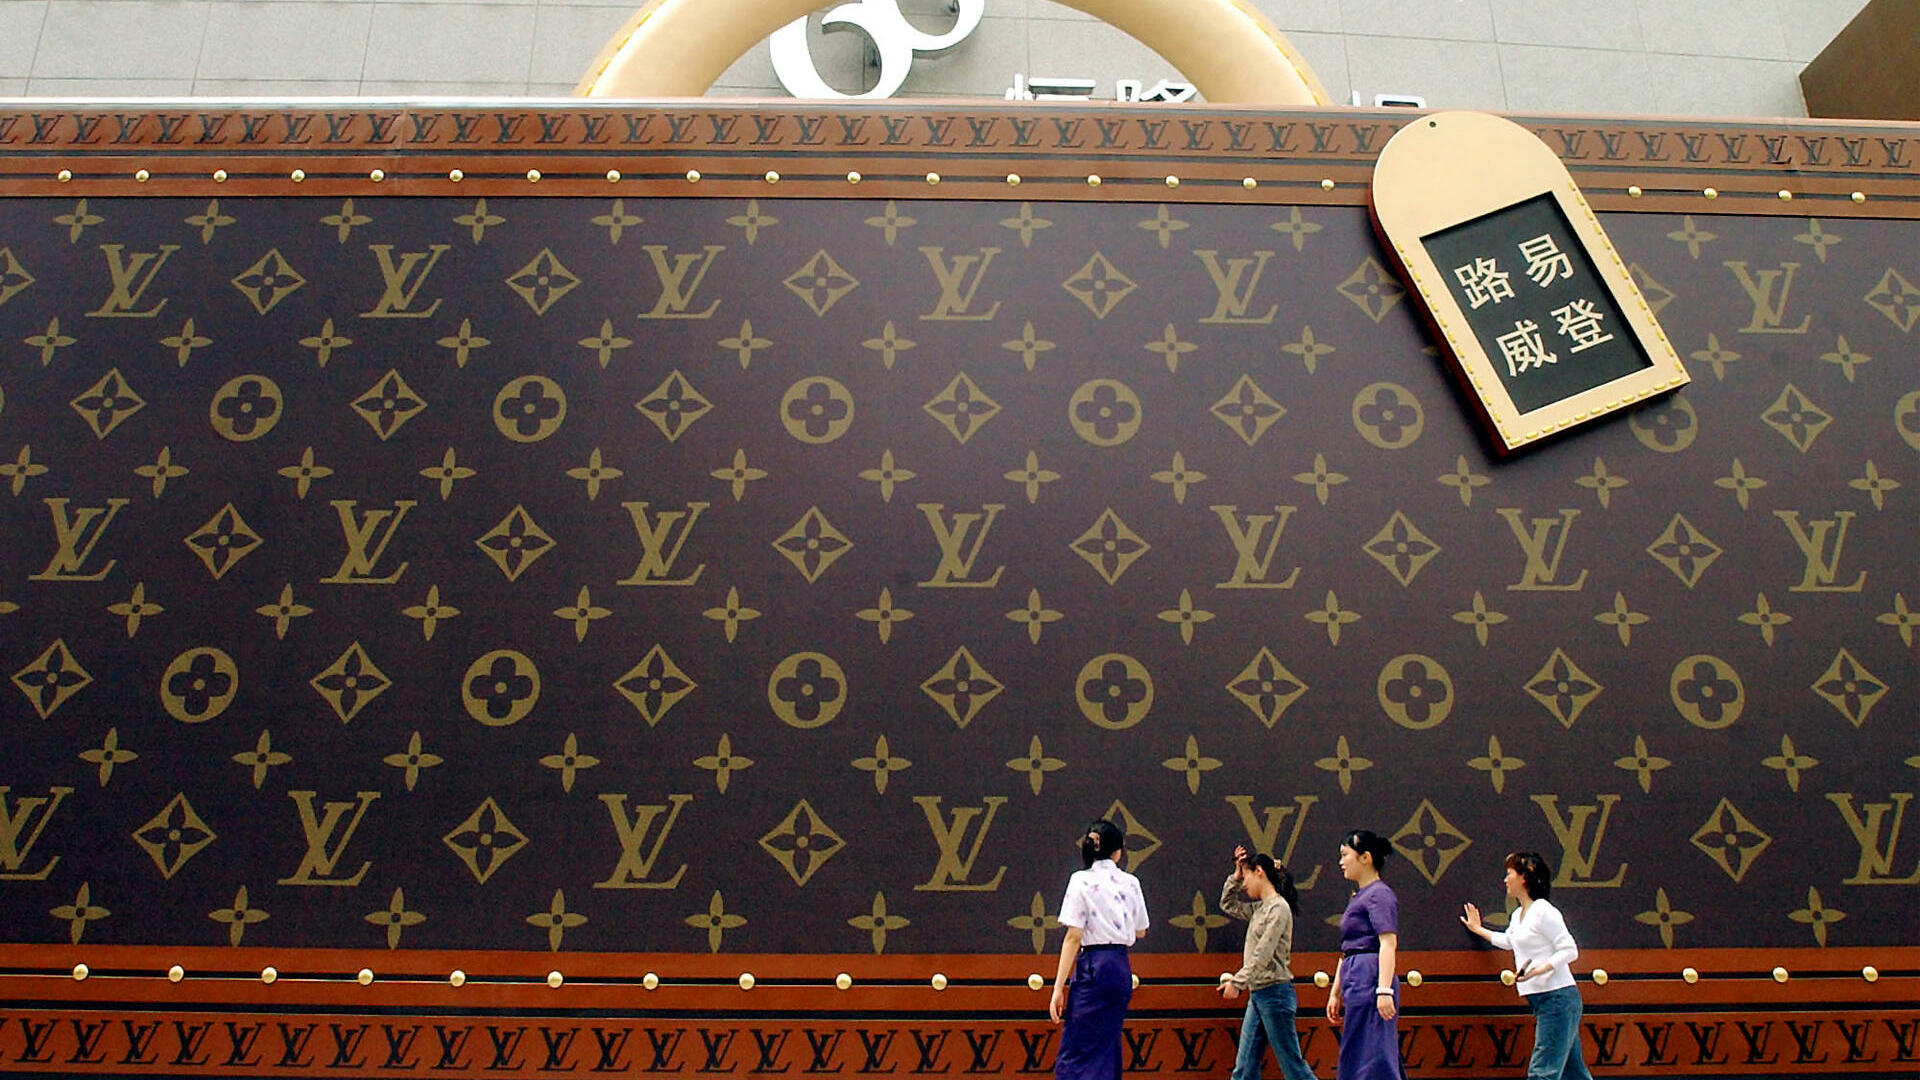 Louis Vuitton in Shanghai Quelle: AP